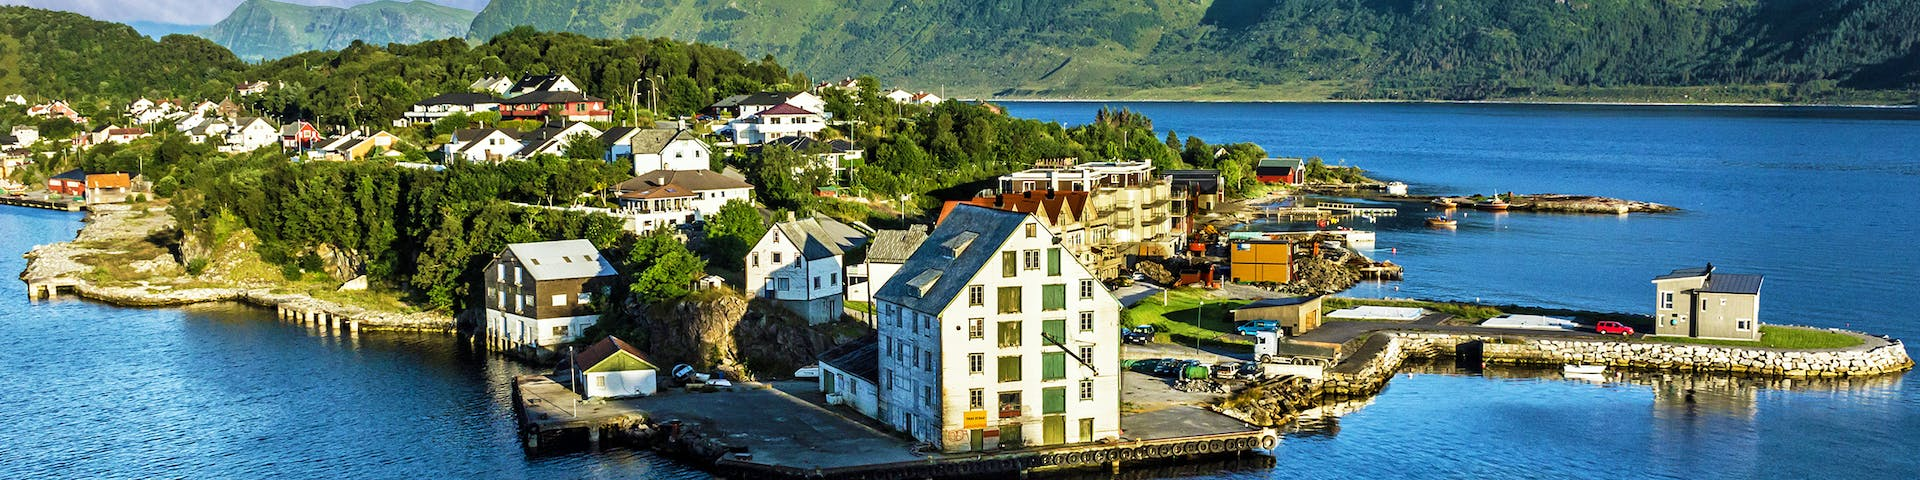 How to Apply to an International University in Norway in 2019